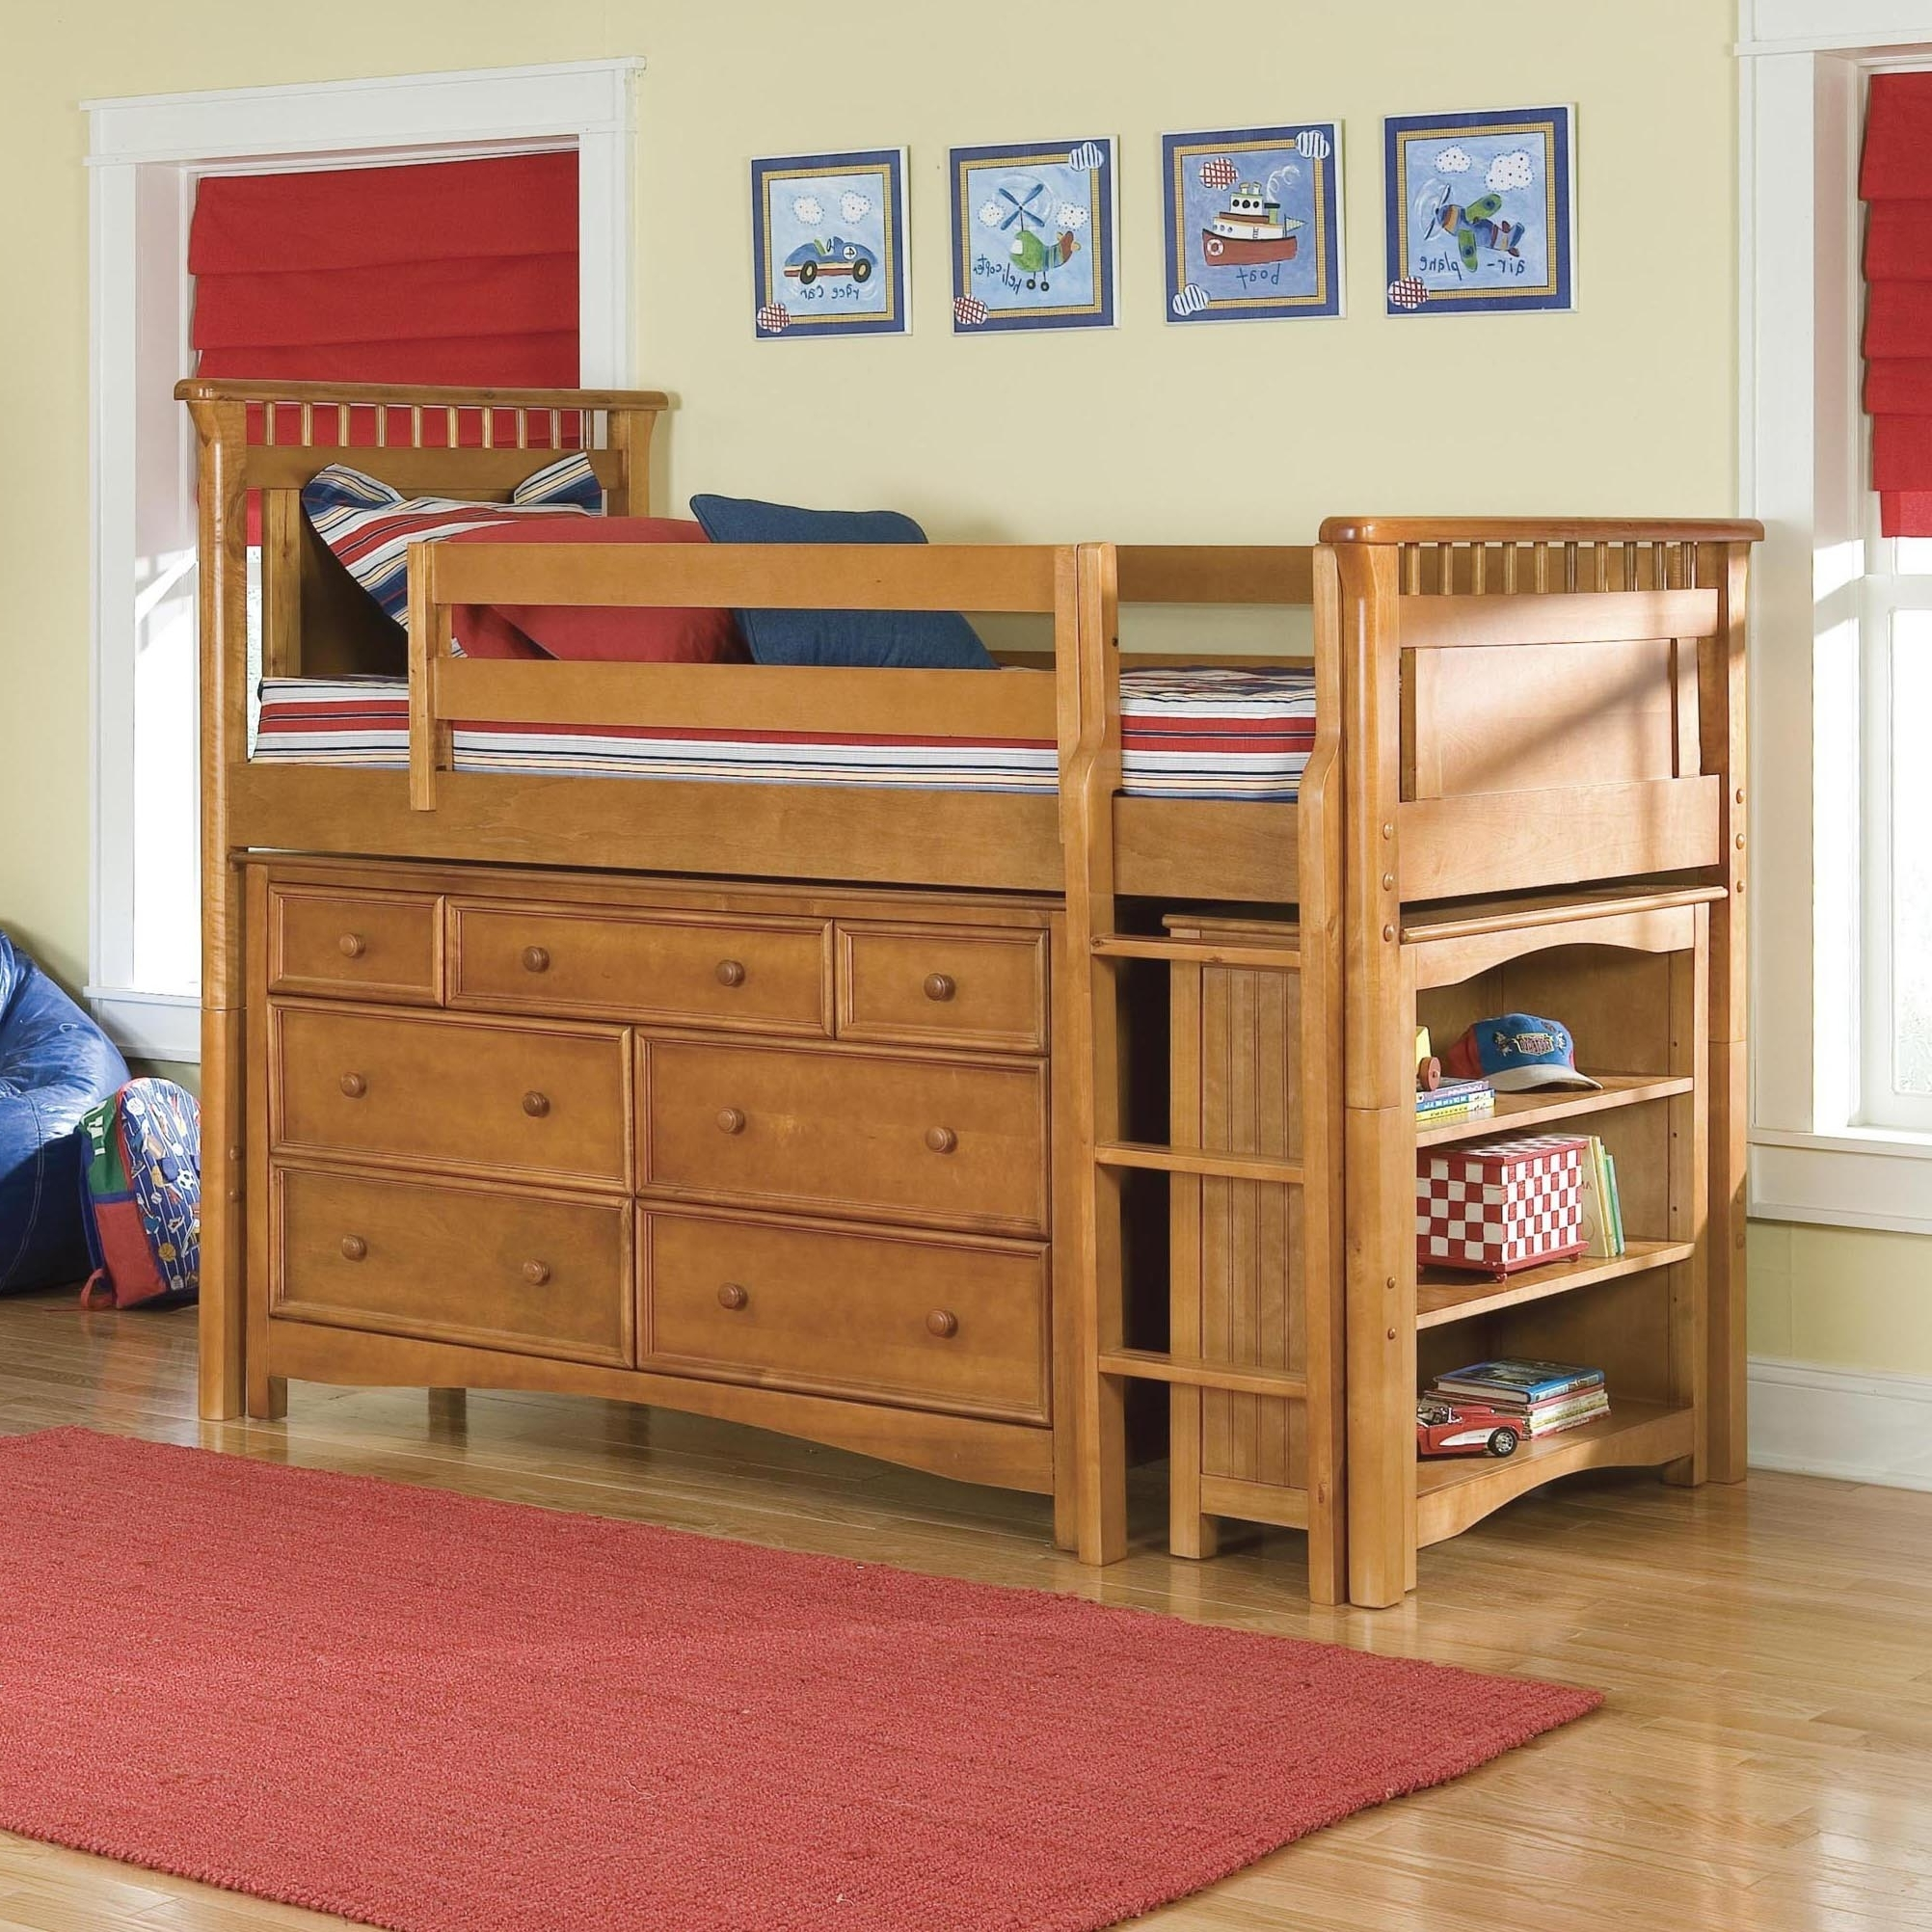 Toddler Bed and Dresser Sets | Rooms to Go Bunk Beds for Girls | Kidsroomstogo